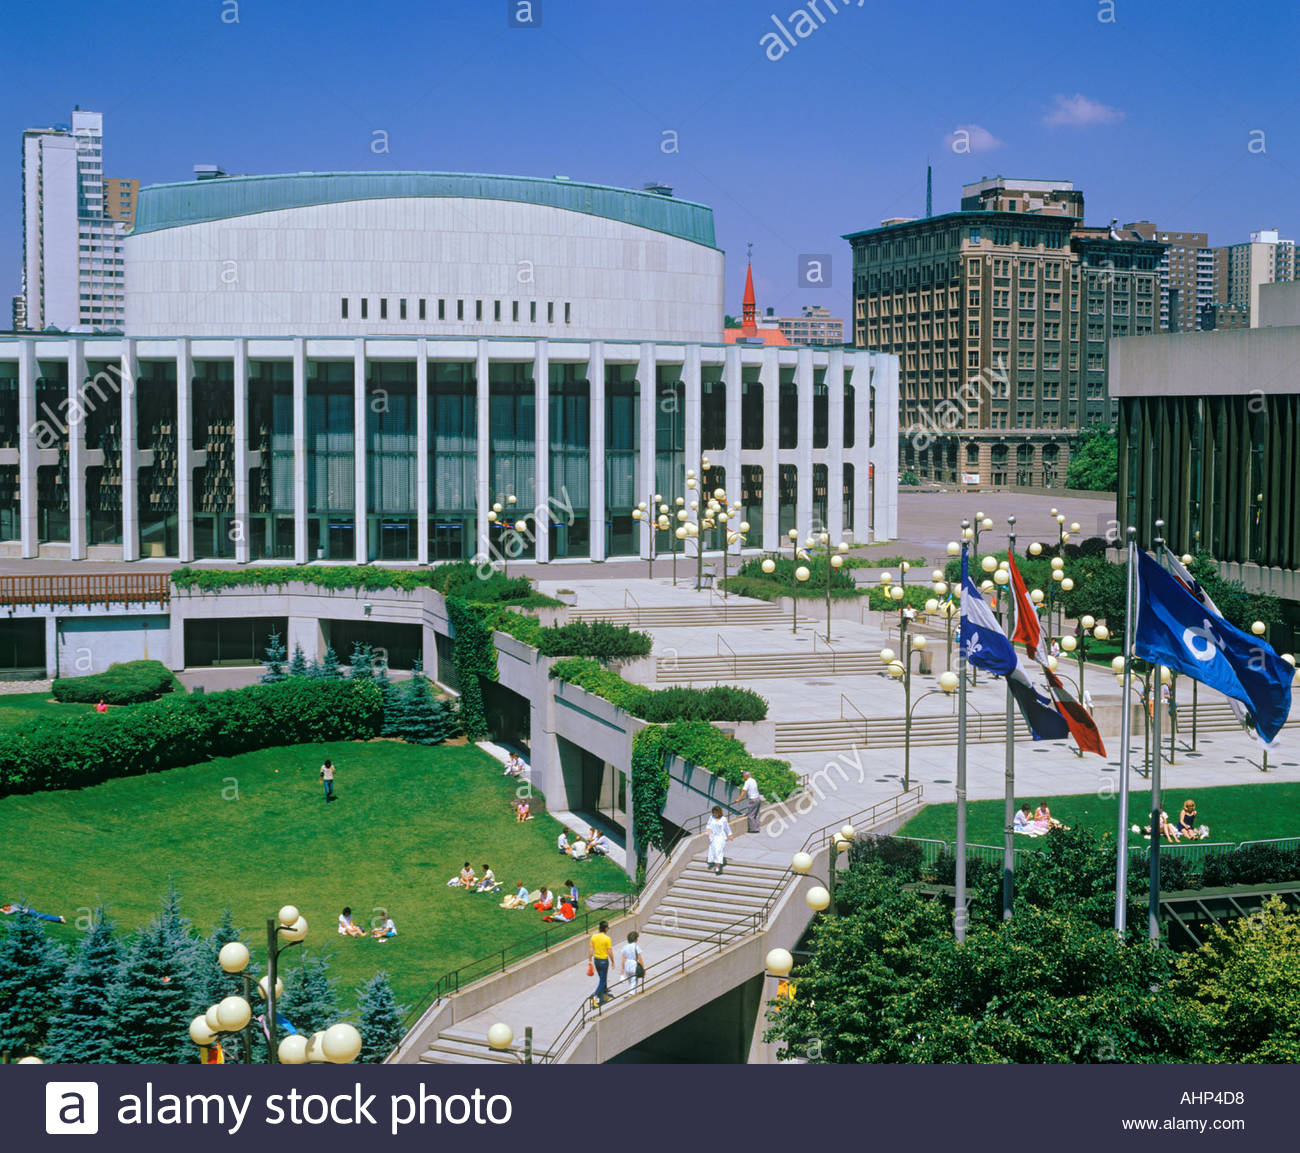 Place Des Arts concert hall in Montreal Quebec Canada - Stock Image